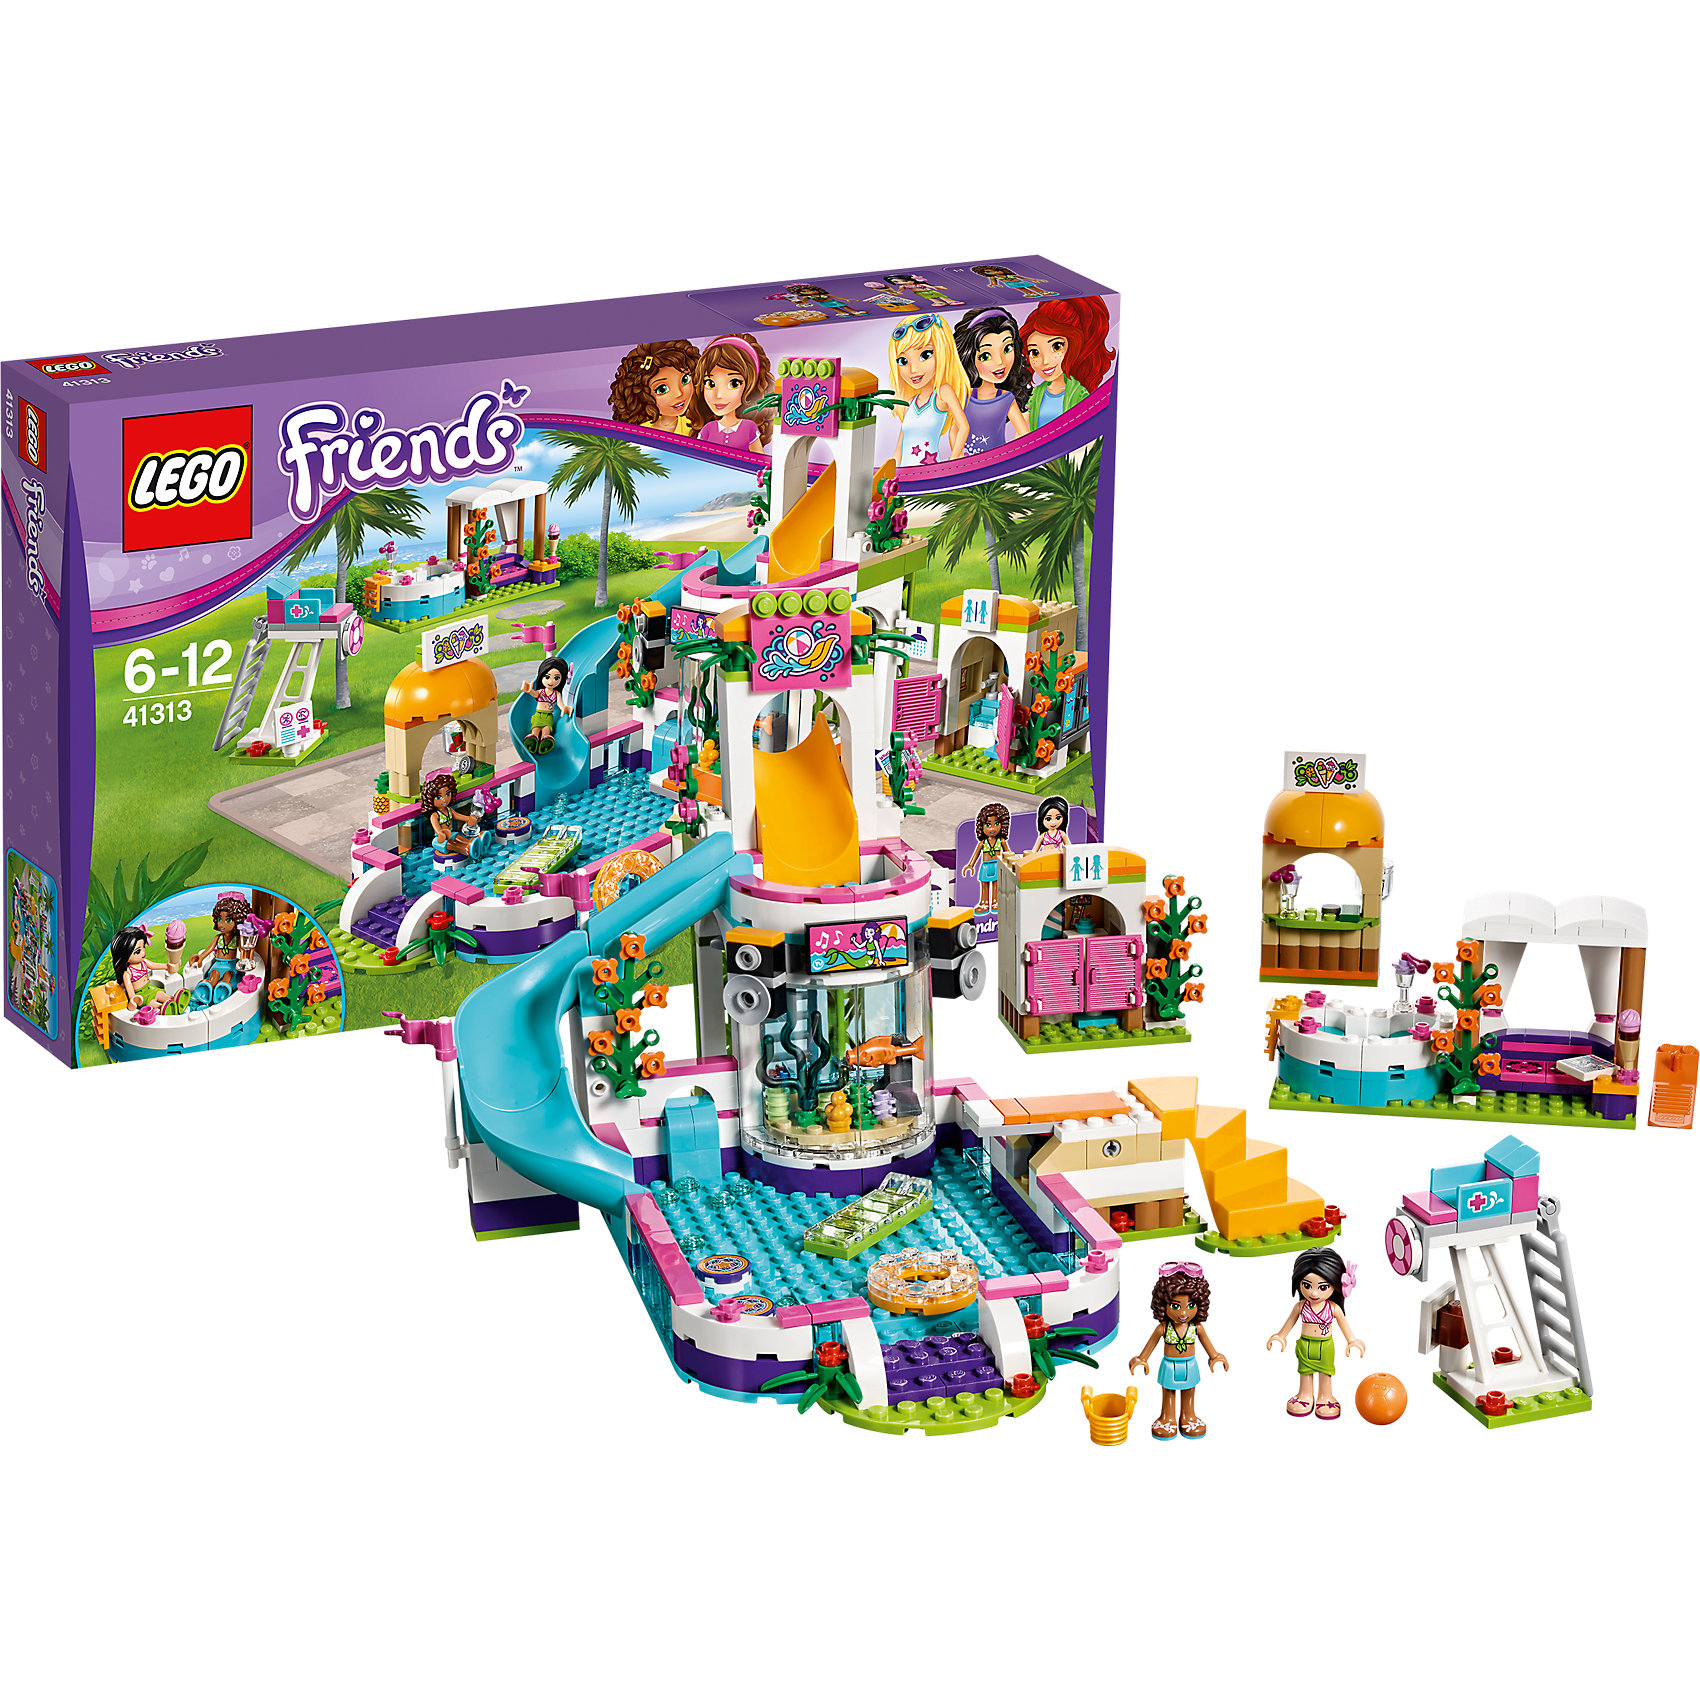 LEGO Friends 41313: Летний бассейн